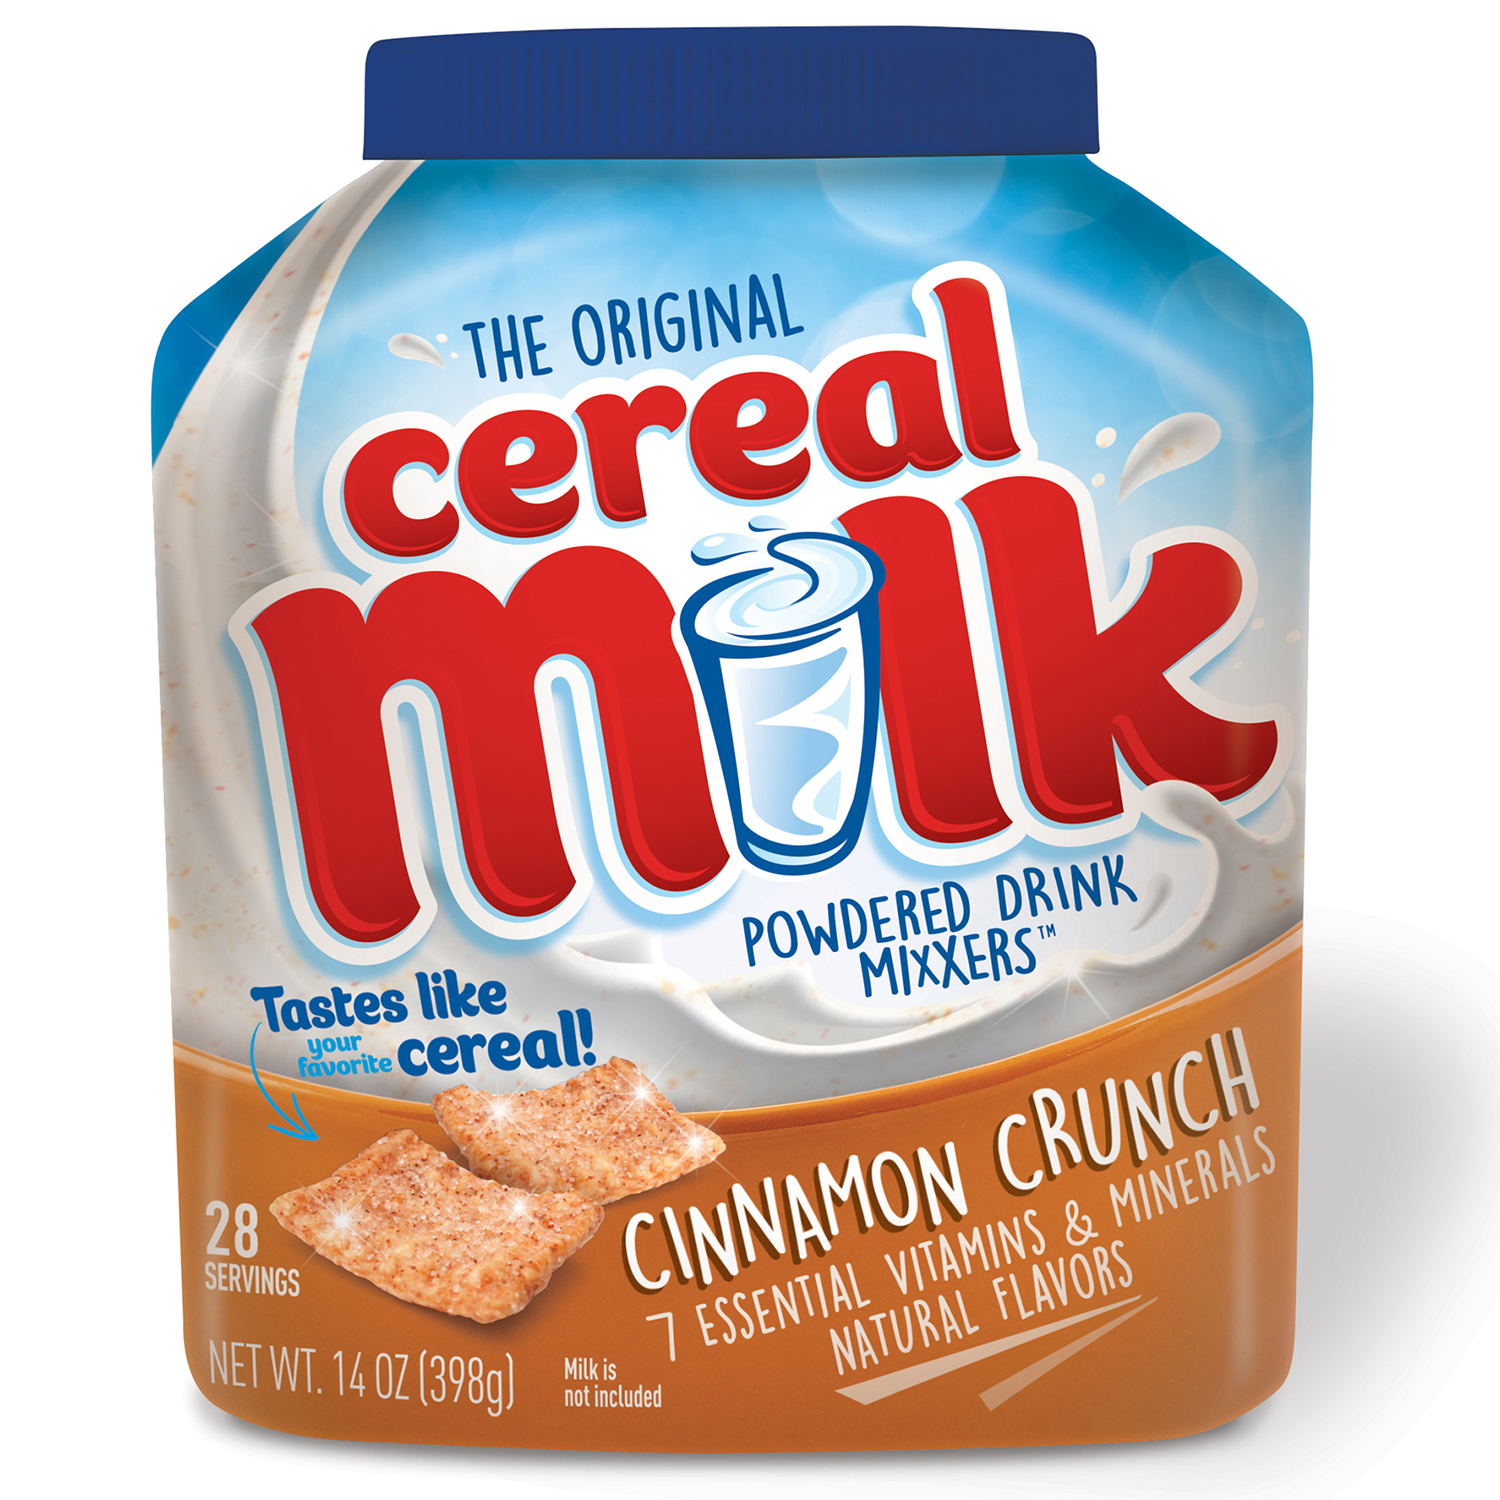 The Original Cereal Milk Mixxers Cinnamon Crunch 14 oz